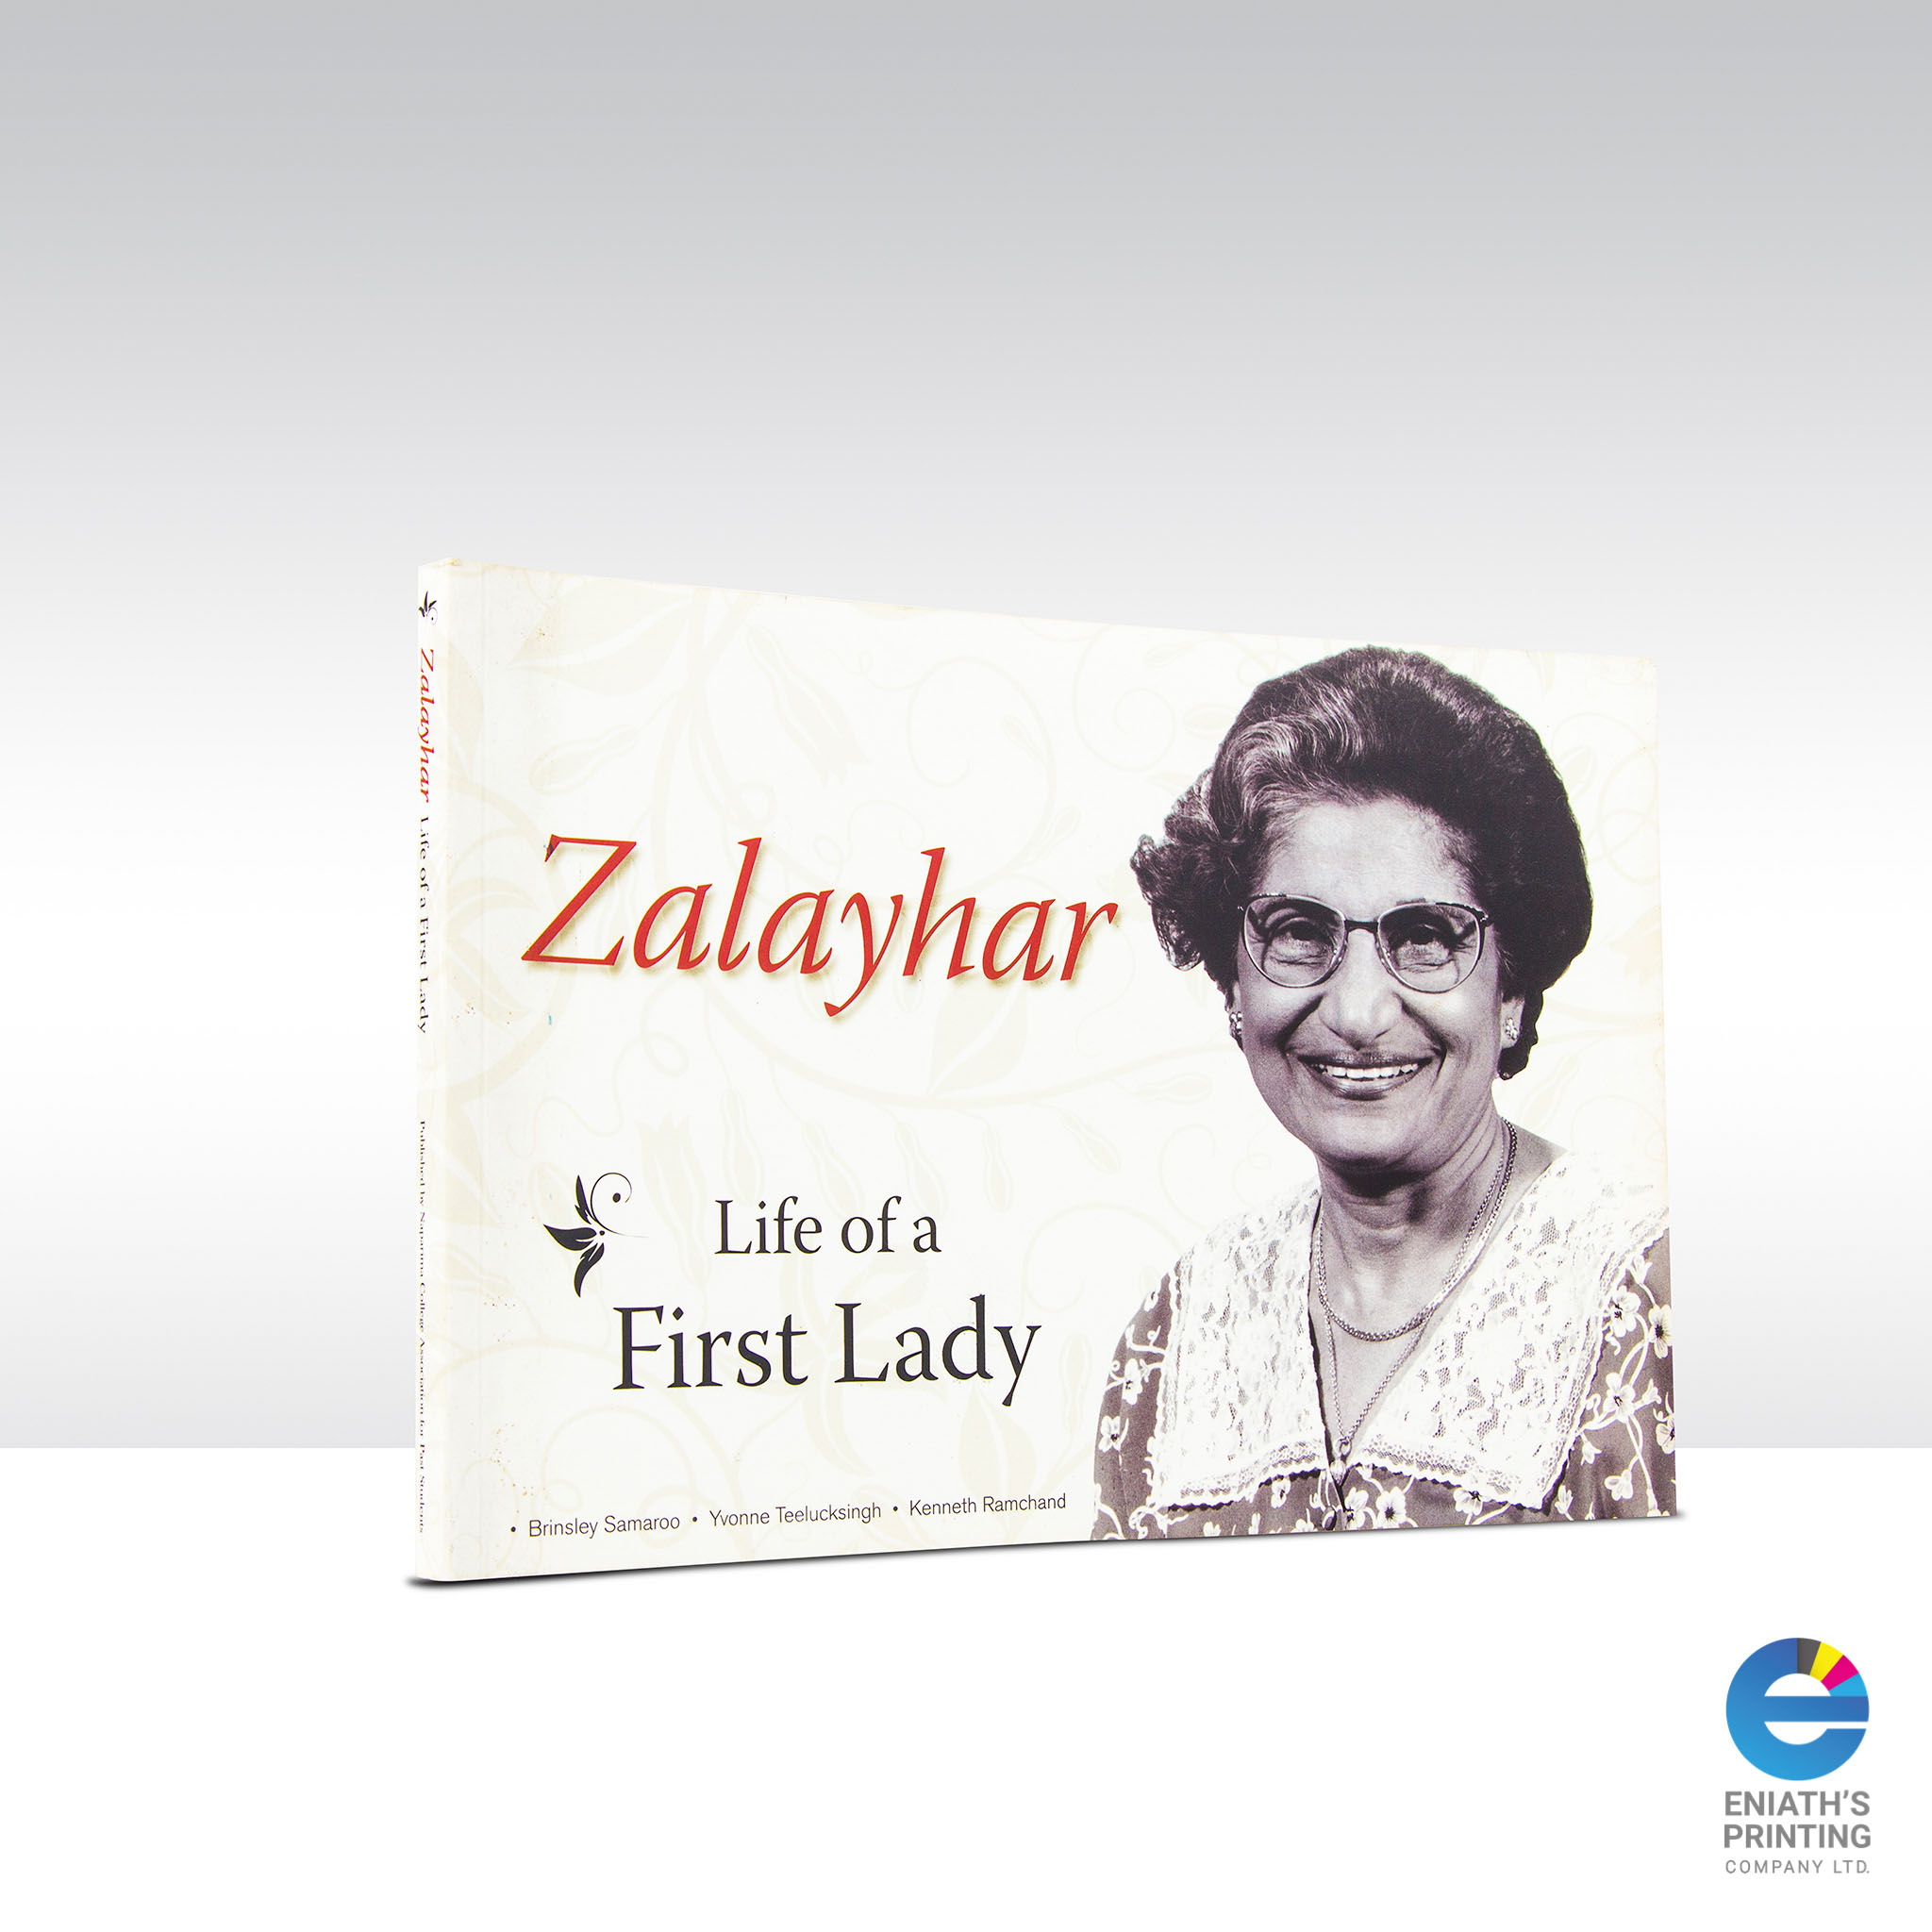 Zalayhar - Life of a First Lady - Printed by Eniath's Printing Co. Ltd.